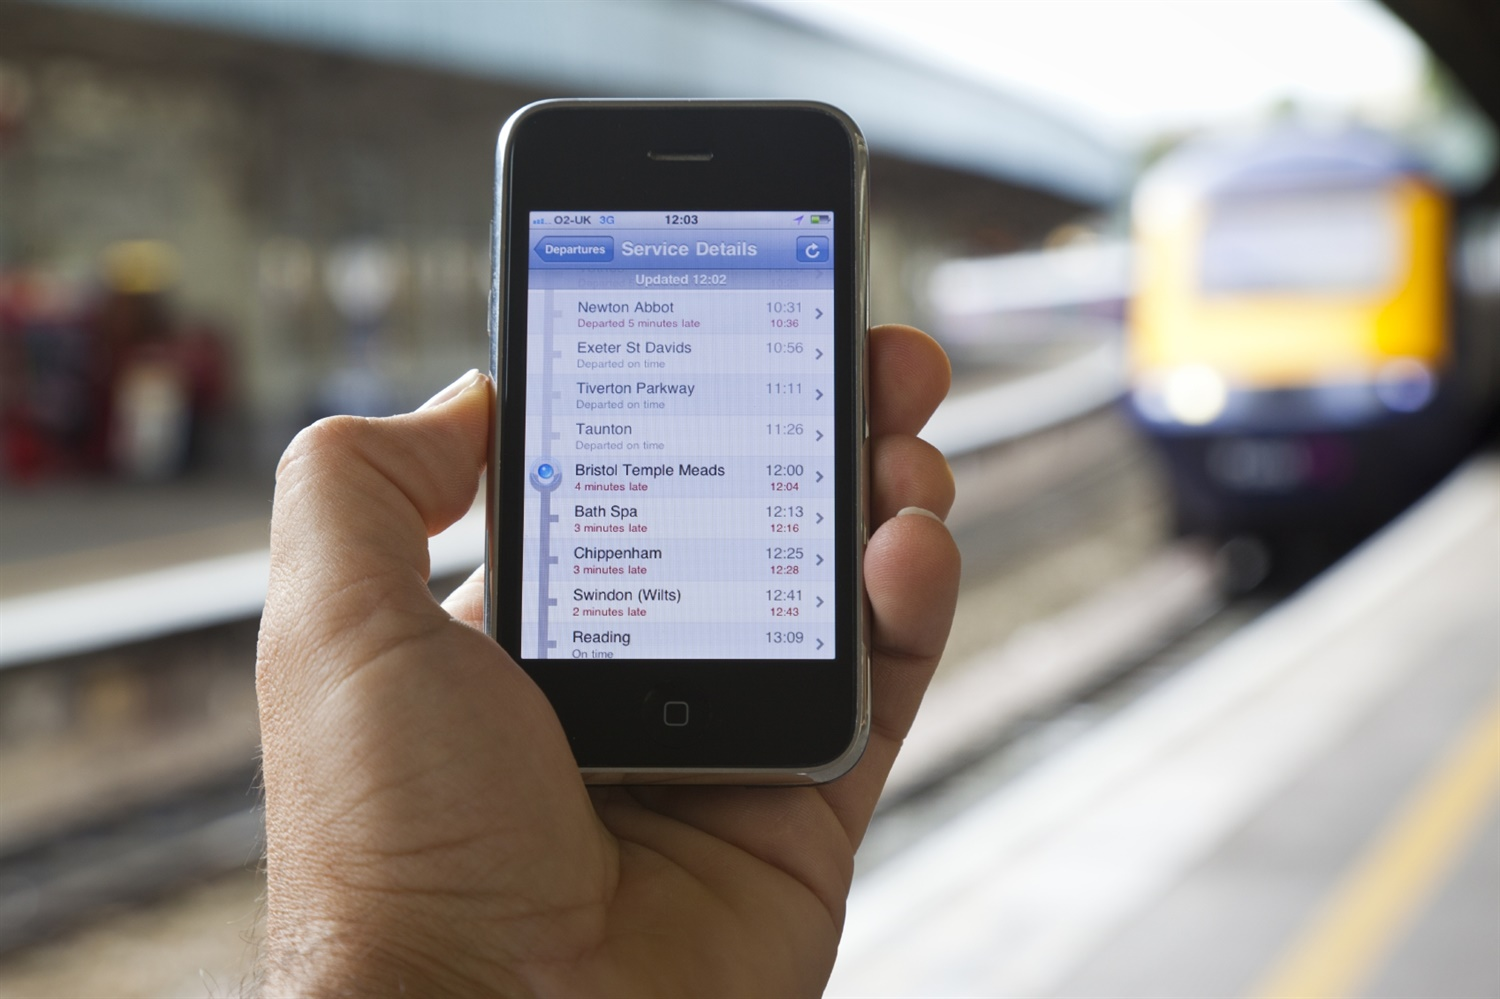 Drones could be used to boost mobile network coverage on trains